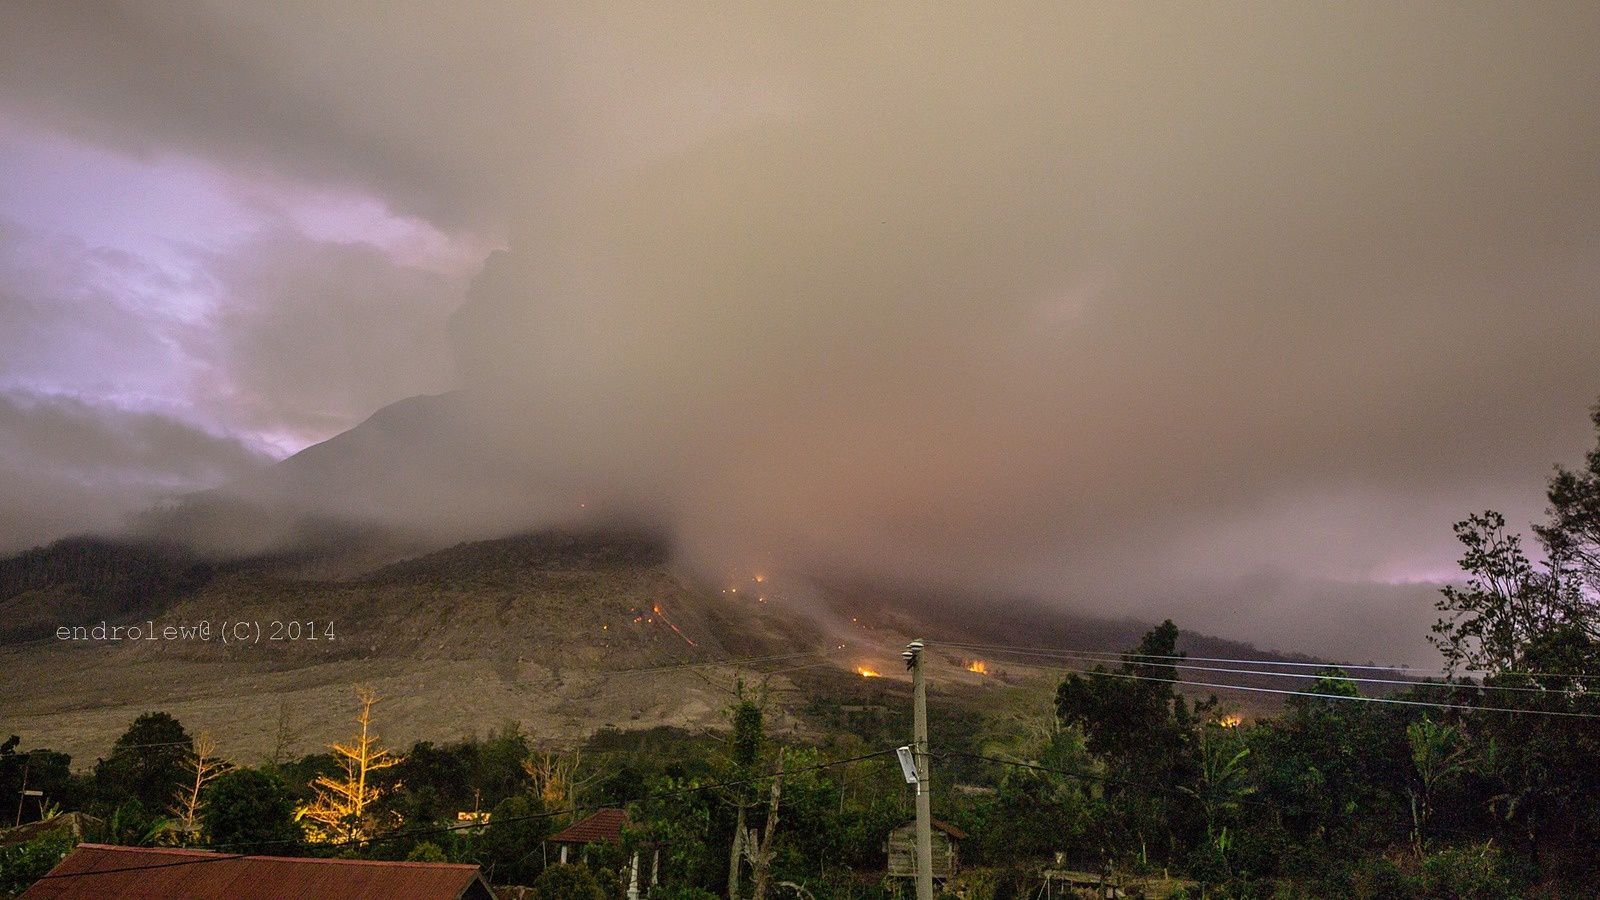 Sinabung - éruption du 29.06.2014 / 19h29 - photo Endrolewa / via Facebook